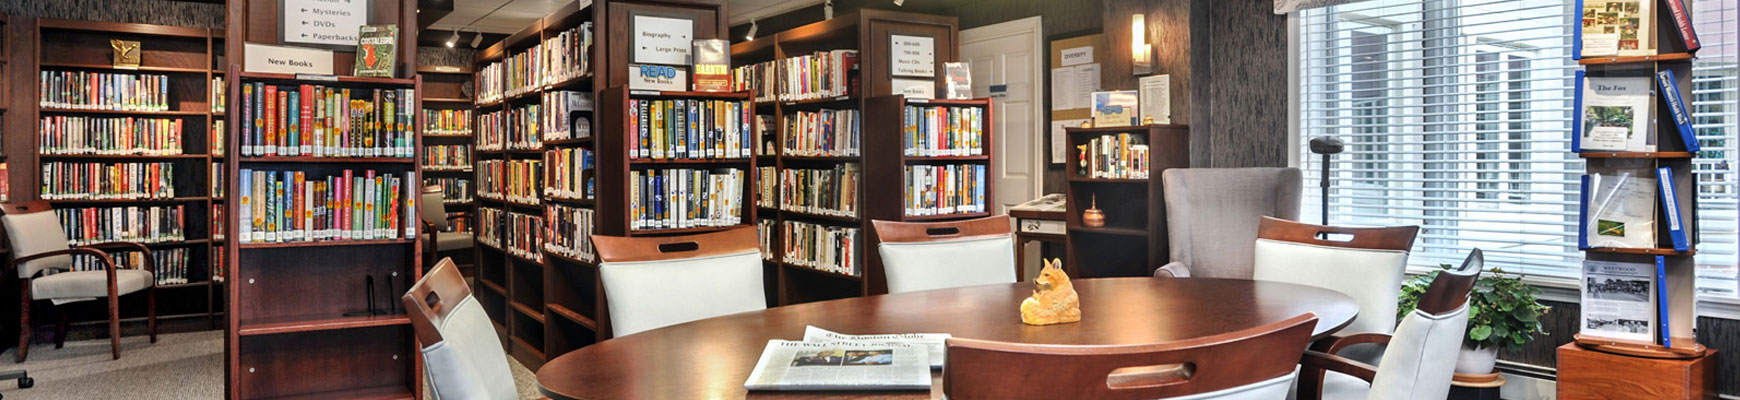 The library at the Fox Hill senior living community